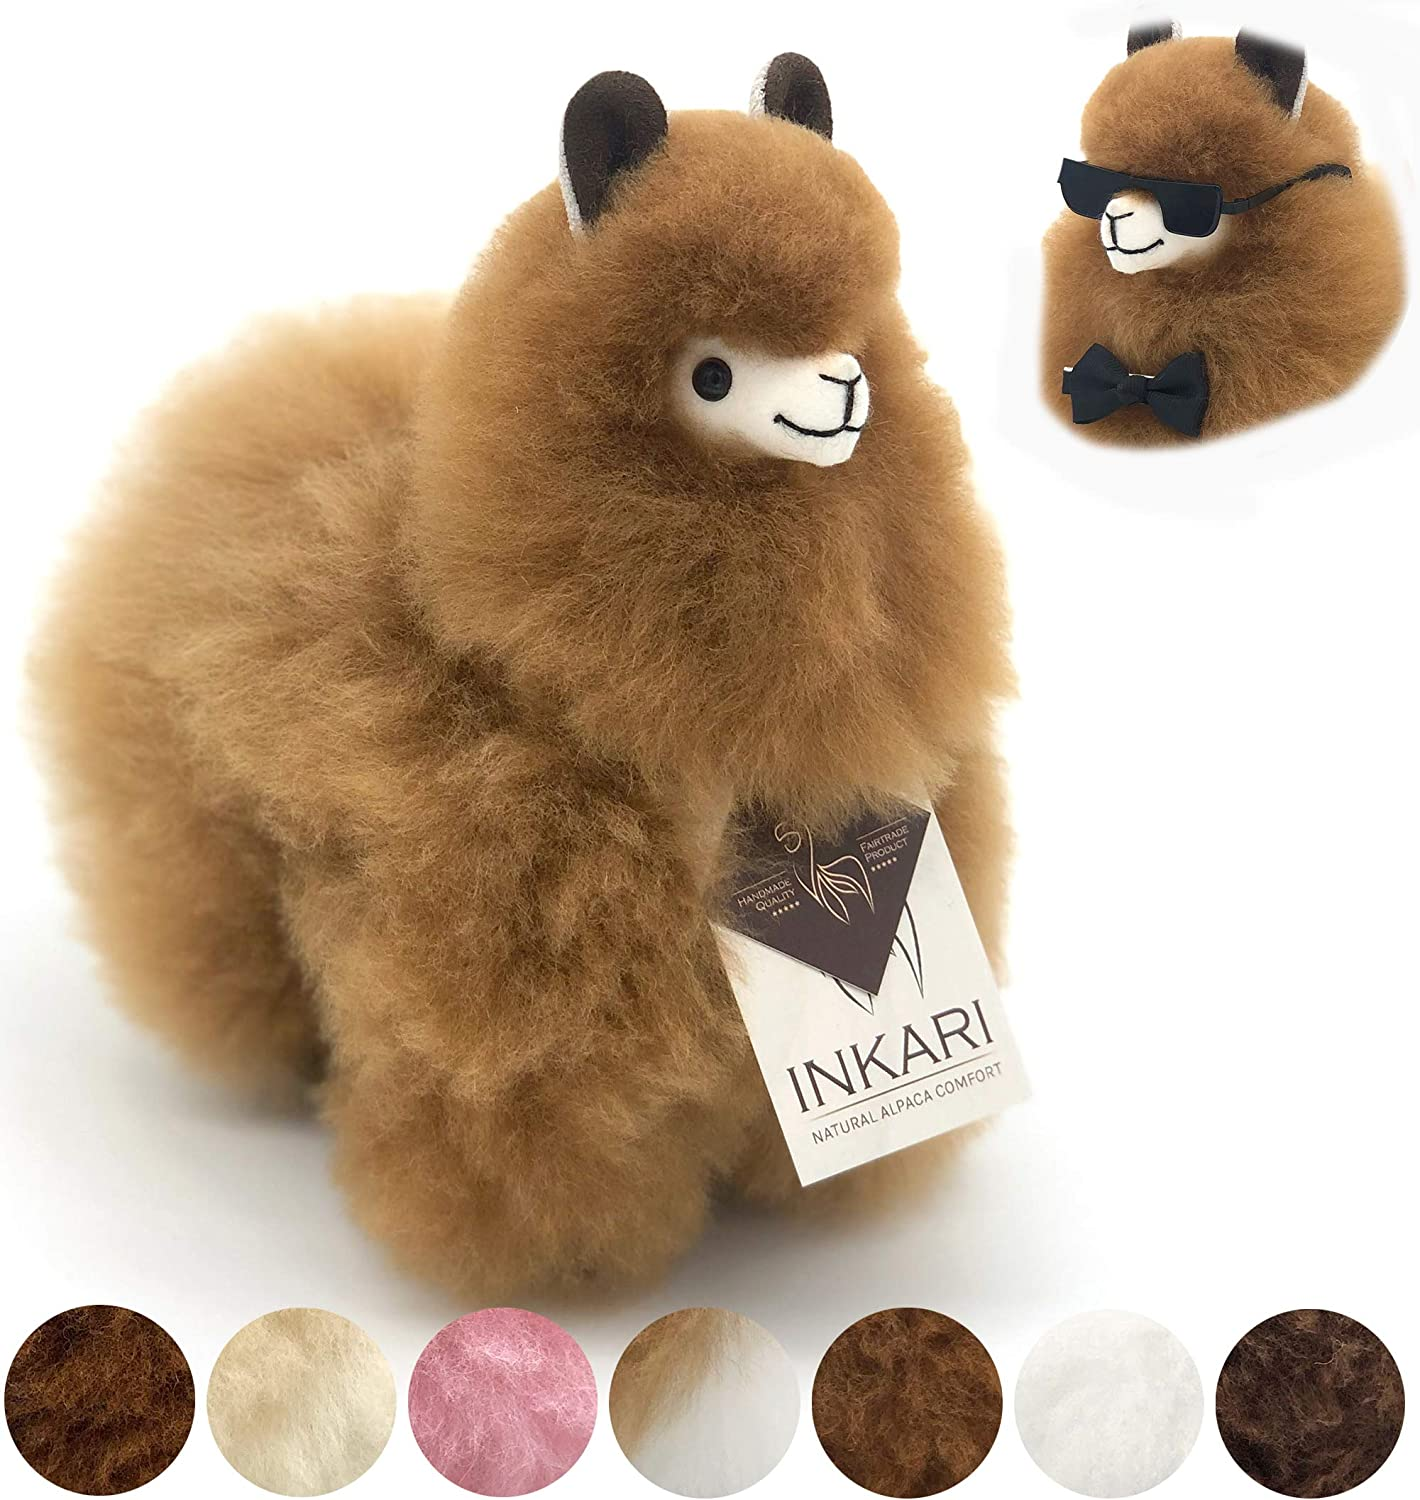 Inkari Alpaca Gift Toy, Super Sweet and Fluffy, Made of Real Alpaca and Llama Wool, Fair and Sustainable…